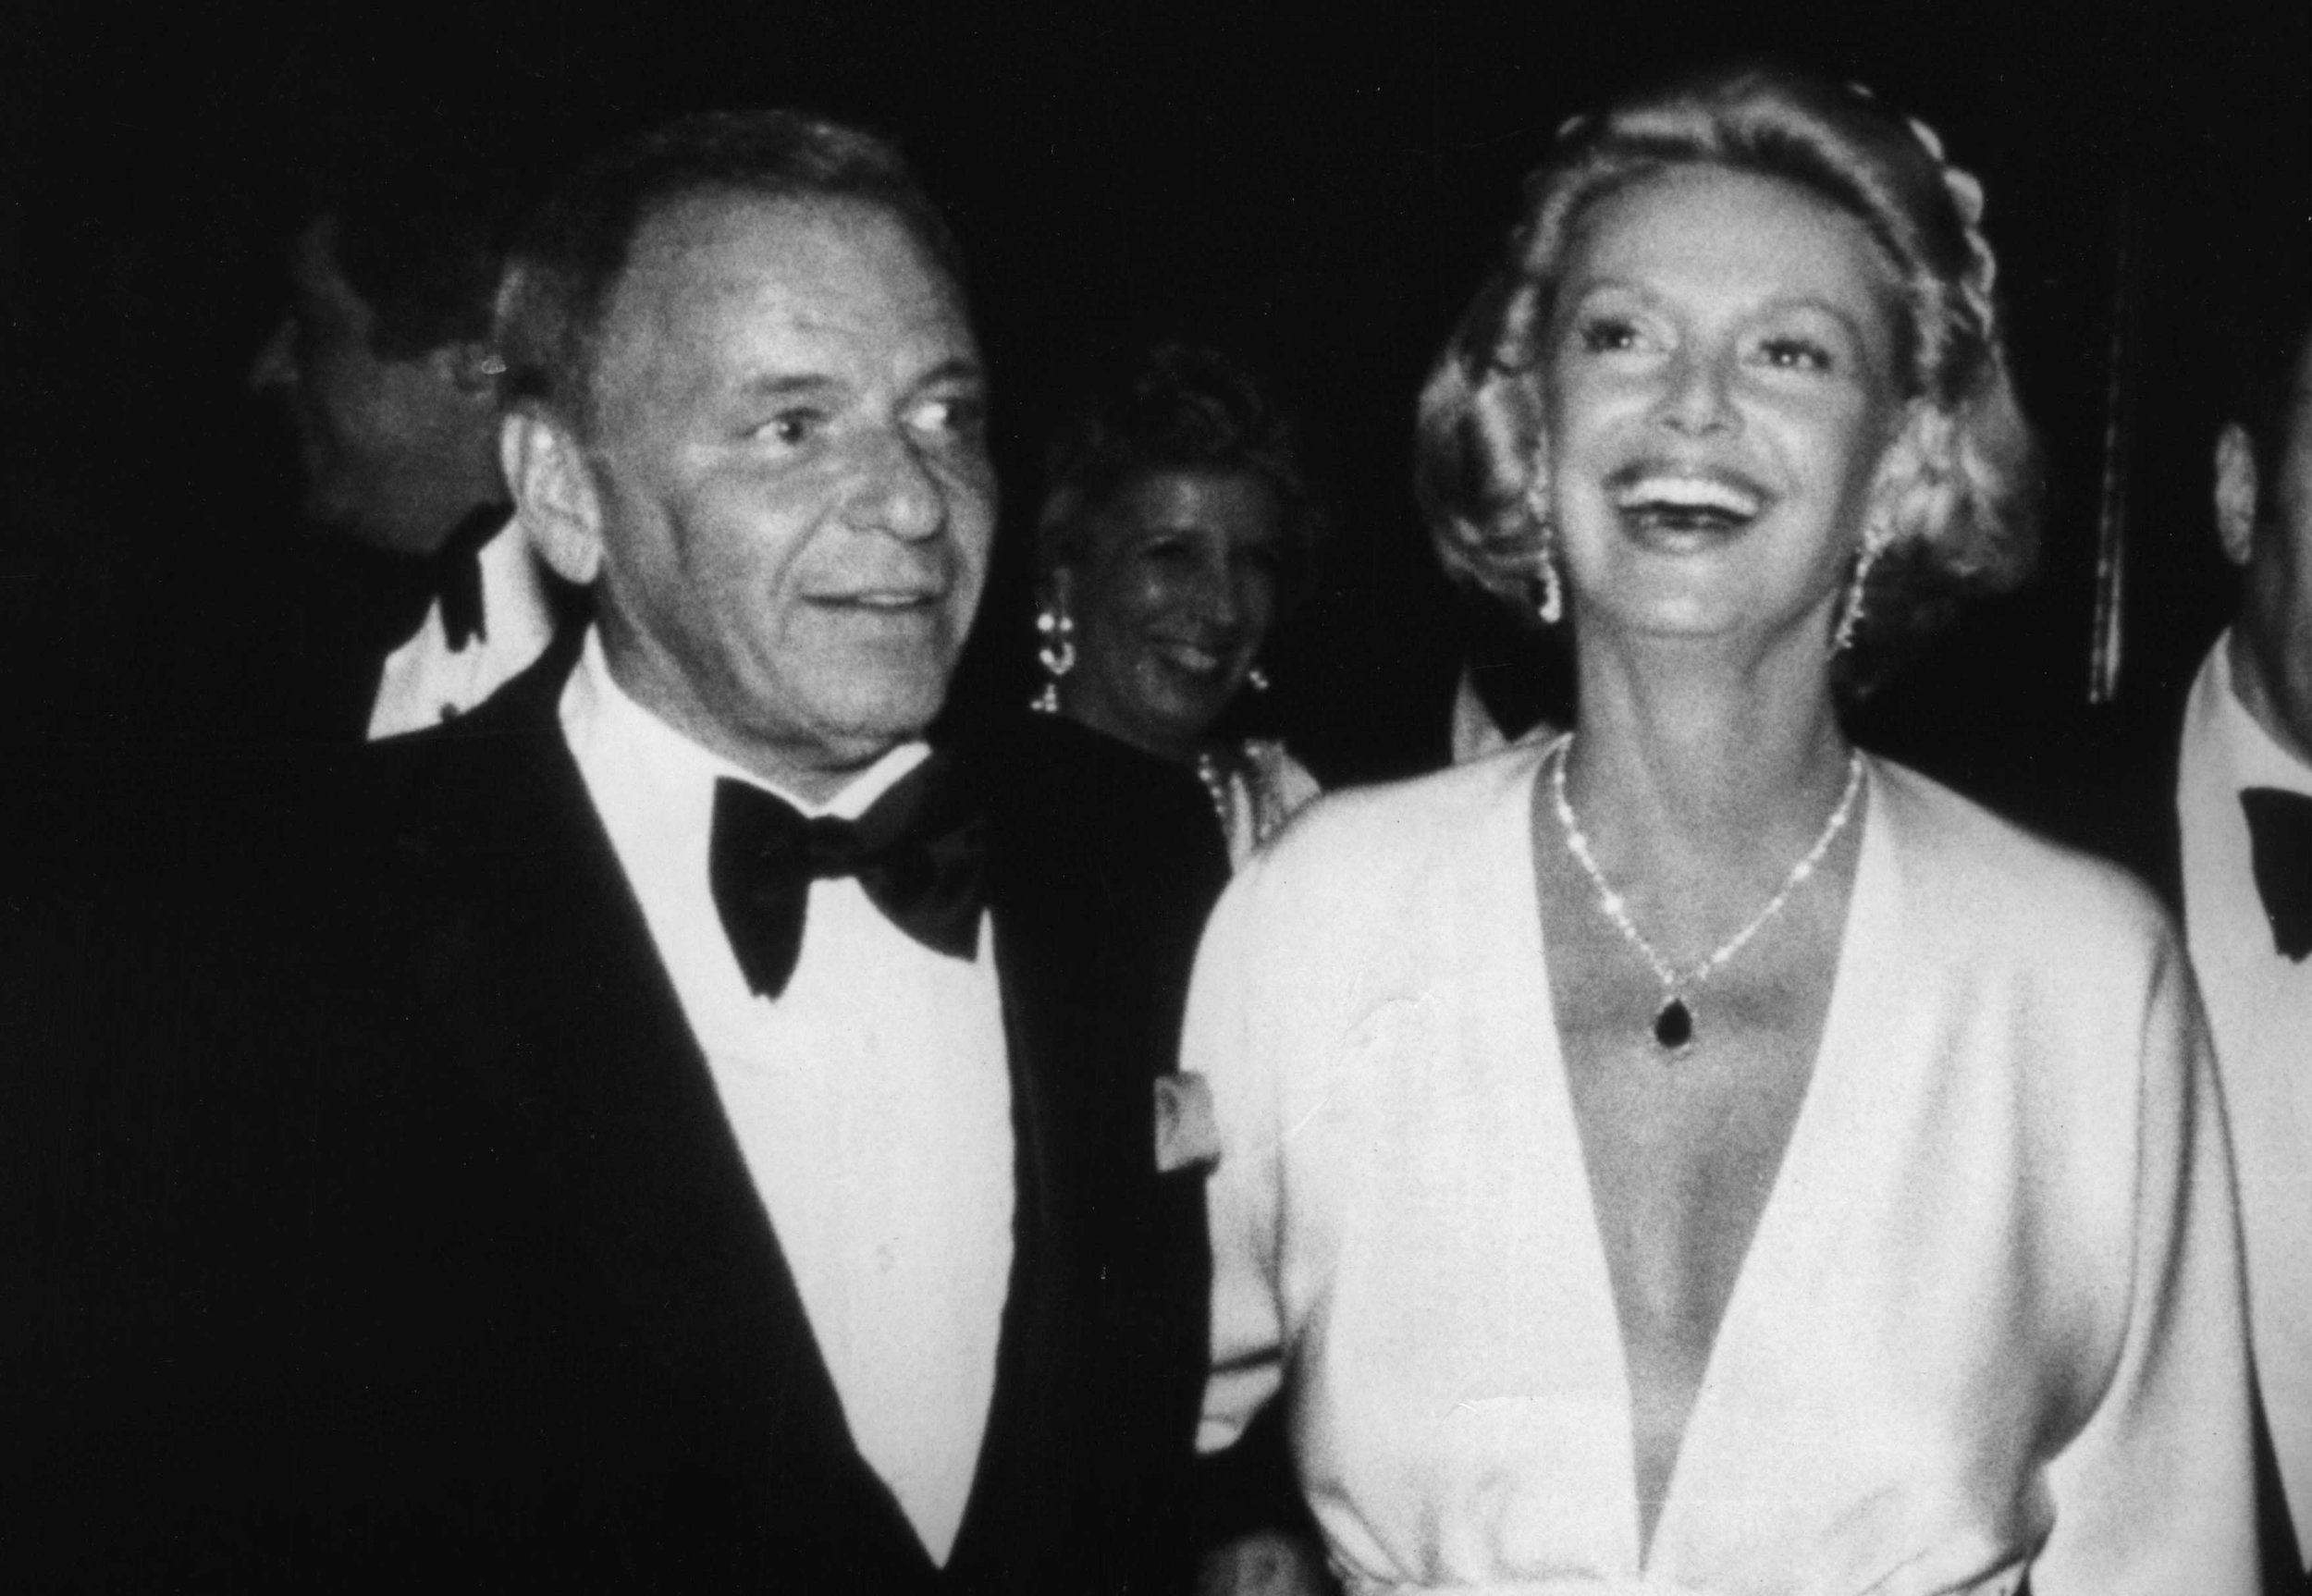 Frank and Barbara Sinatra in 1977